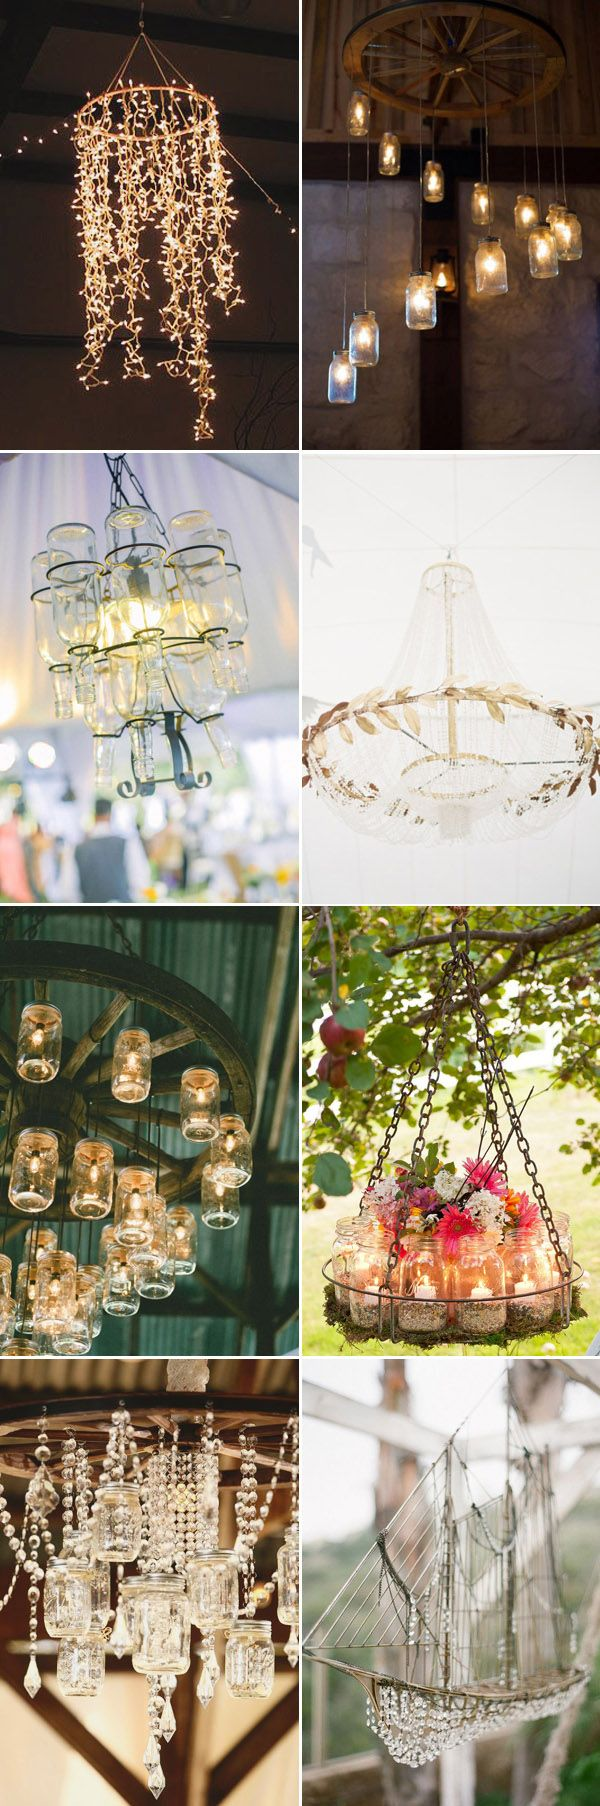 100 best wedding chandeliers images on pinterest weddings floral unique diy chandeliers for wedding decoration ideas aloadofball Choice Image